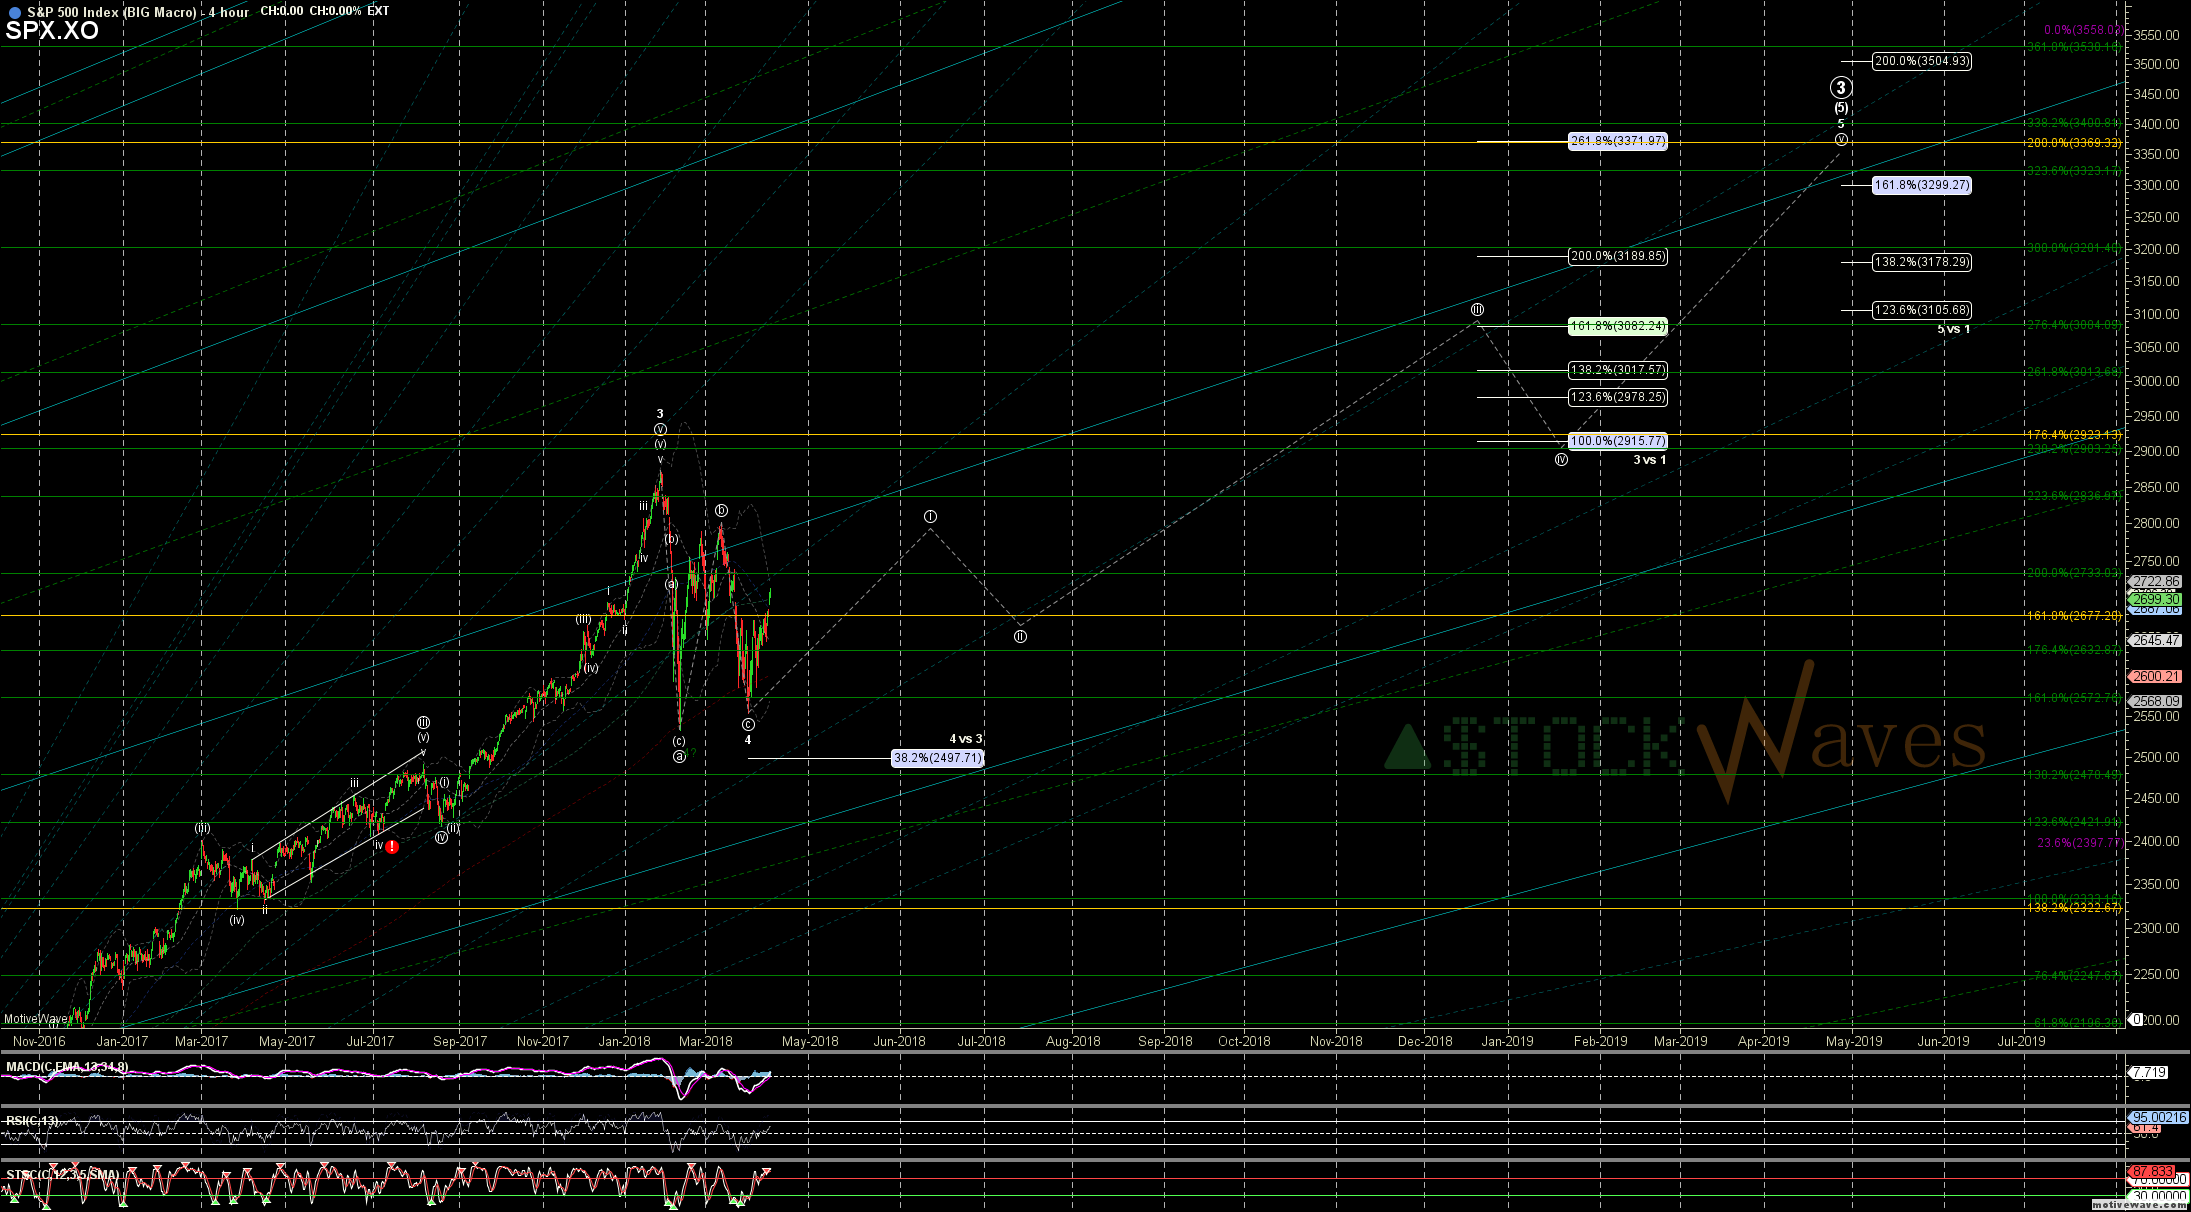 SPX.XO - BIG Macro - Apr-18 0739 AM (4 hour)